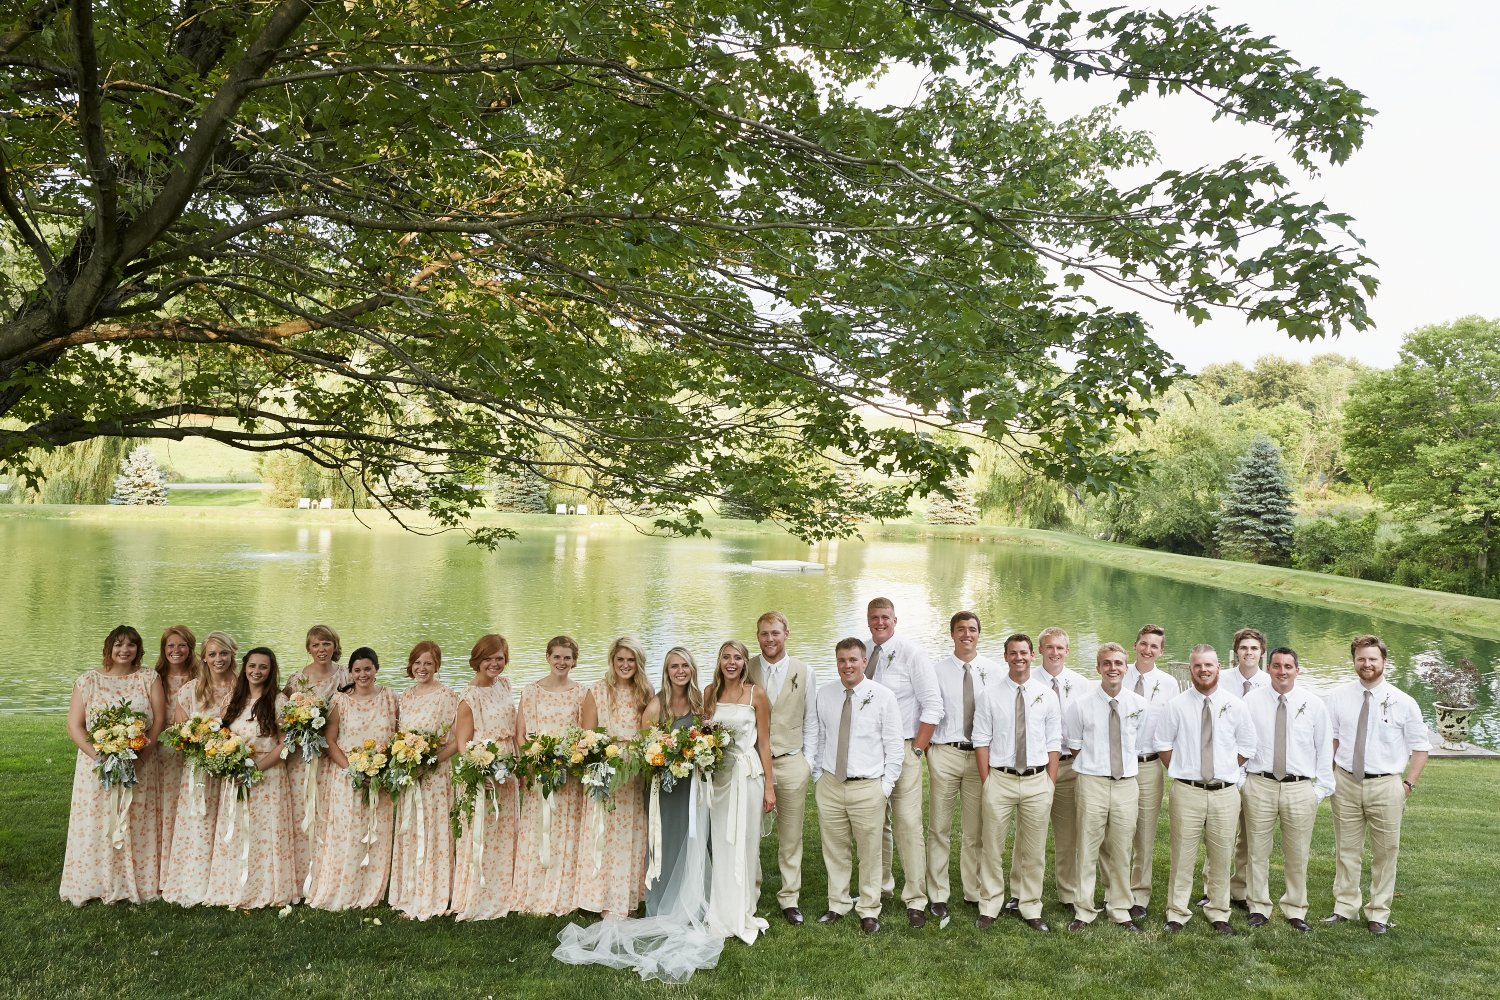 "Normal   0           false   false   false     EN-US   X-NONE   X-NONE                                                                               There were 22 attendants at the wedding. That is a lot of bouquets and boutineers! The pallet was whites, yellow and peaches for the bridesmaids and a more colorful, wildflower bouquet for Rachel. We grew many of the flowers right on the bride's property. The groom and his groomsmen wore simple rosemary and lavender boutineers.                                                                                                                                                                                                                                                                                                    /* Style Definitions */  table.MsoNormalTable 	{mso-style-name:""Table Normal""; 	mso-tstyle-rowband-size:0; 	mso-tstyle-colband-size:0; 	mso-style-noshow:yes; 	mso-style-priority:99; 	mso-style-qformat:yes; 	mso-style-parent:""""; 	mso-padding-alt:0in 5.4pt 0in 5.4pt; 	mso-para-margin-top:0in; 	mso-para-margin-right:0in; 	mso-para-margin-bottom:8.0pt; 	mso-para-margin-left:0in; 	line-height:107%; 	mso-pagination:widow-orphan; 	font-size:11.0pt; 	font-family:""Calibri"",""sans-serif""; 	mso-ascii-font-family:Calibri; 	mso-ascii-theme-font:minor-latin; 	mso-fareast-font-family:""Times New Roman""; 	mso-fareast-theme-font:minor-fareast; 	mso-hansi-font-family:Calibri; 	mso-hansi-theme-font:minor-latin;}"